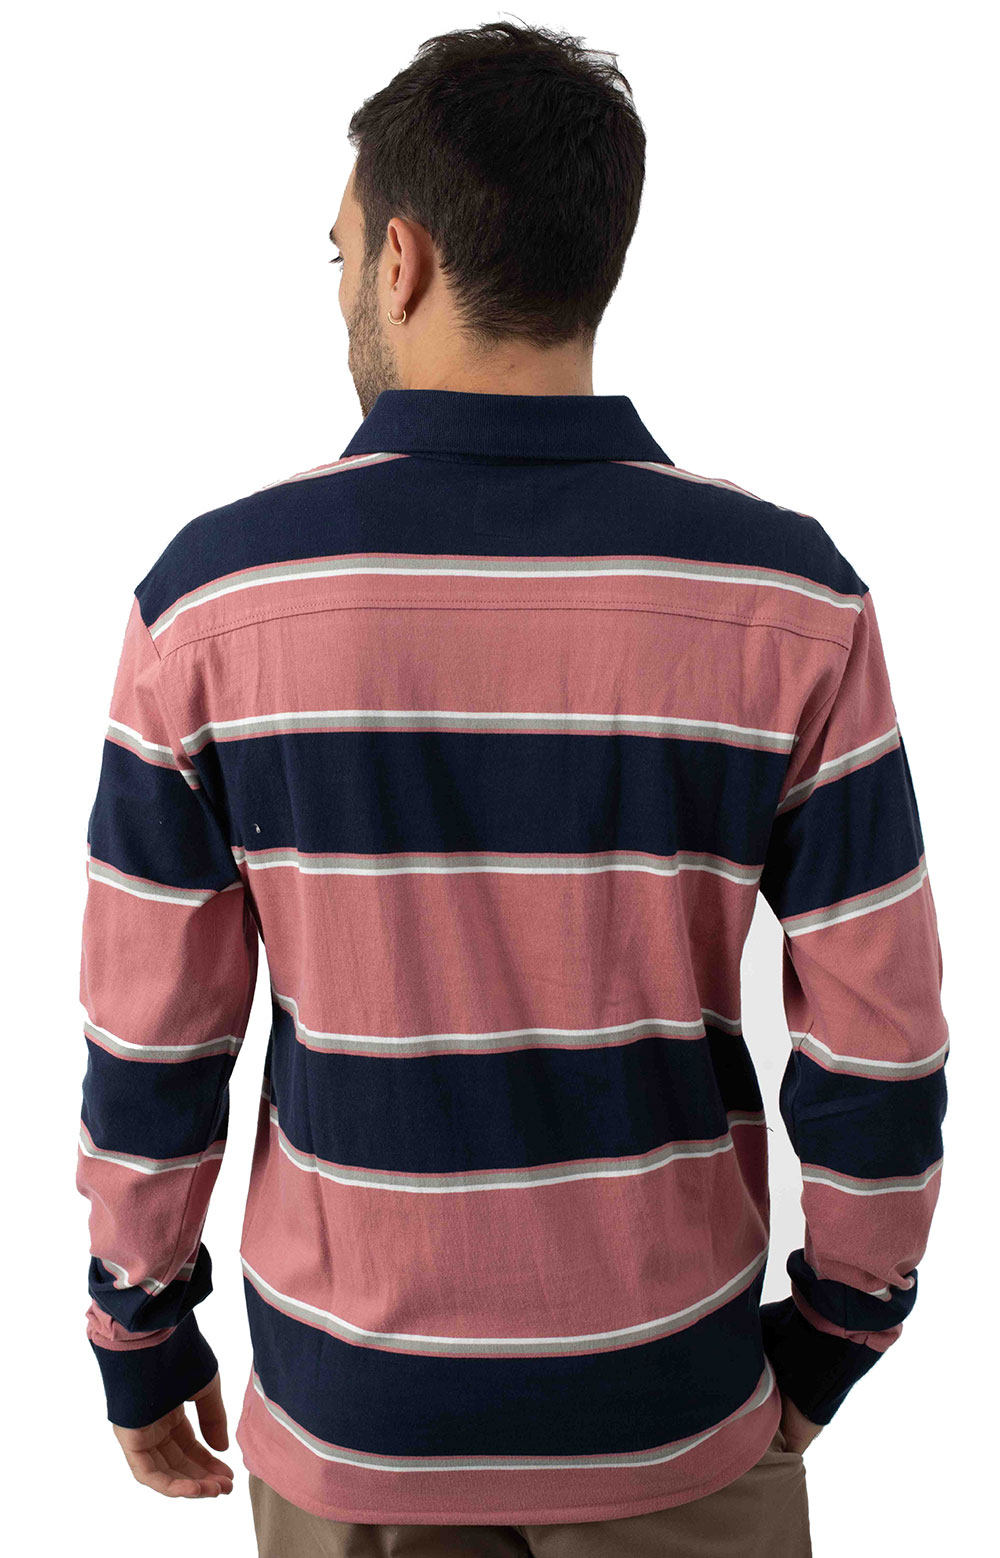 April Skies L/S Polo - Dusty Rose  3